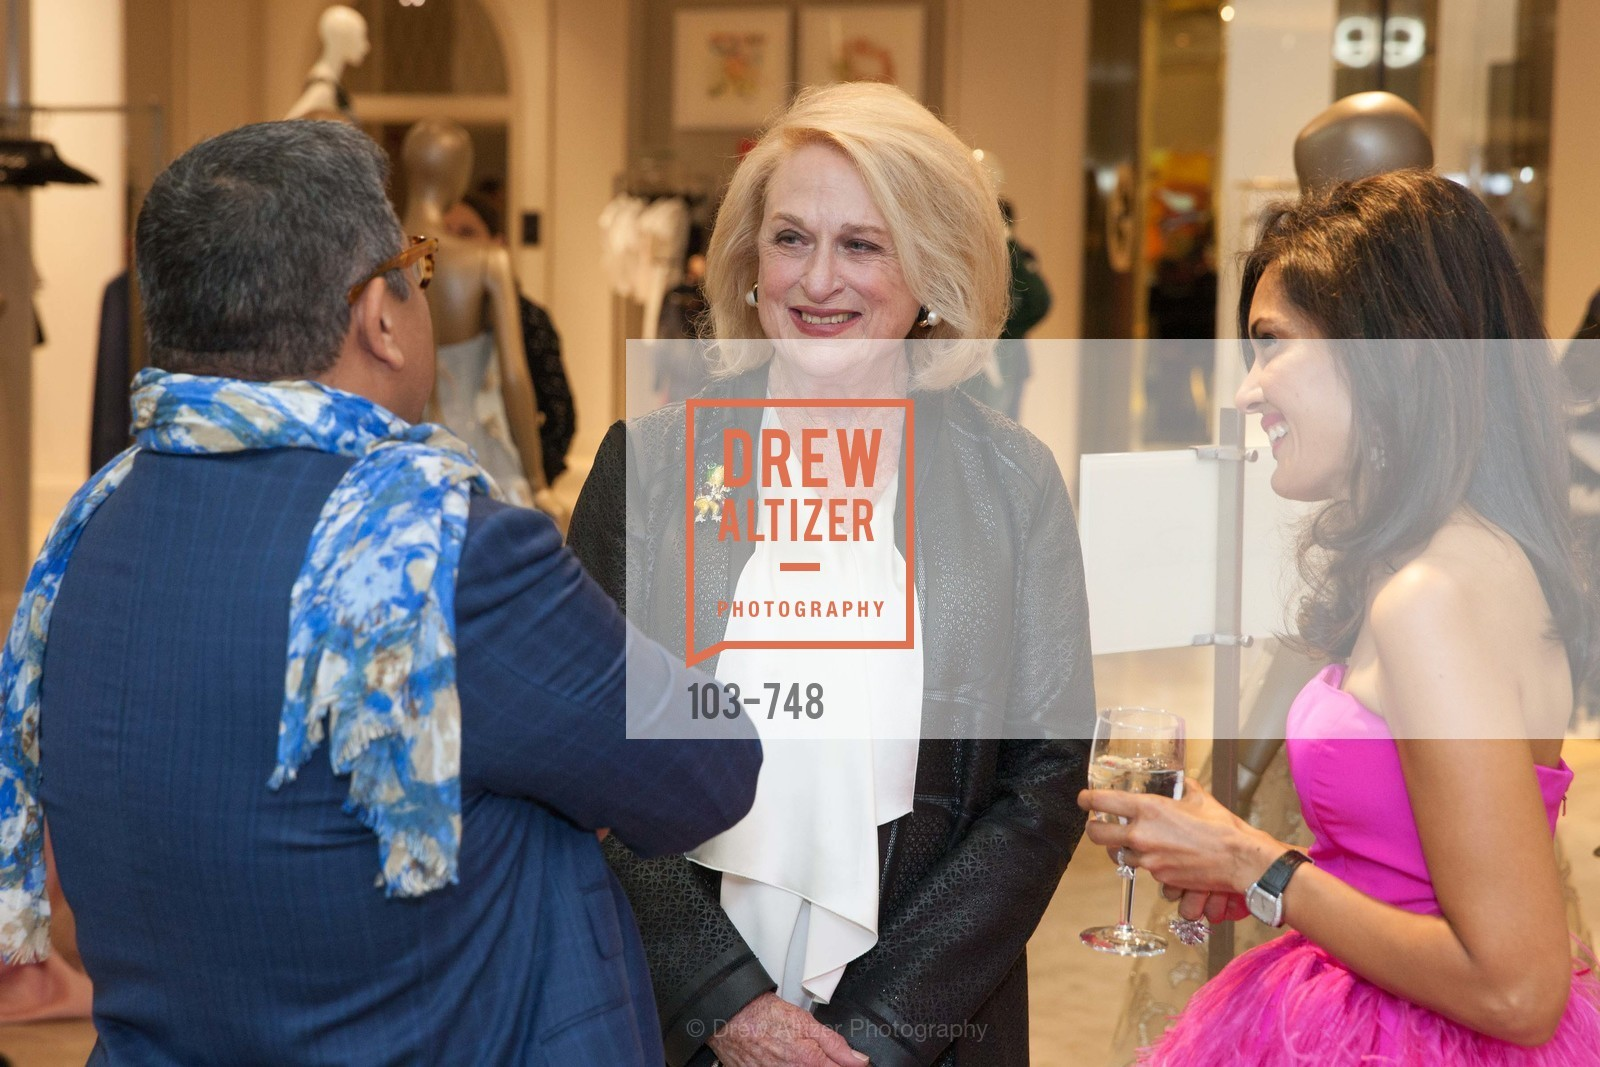 Sally Debenham, Komal Shah, PETER COPPING'S Personal Appearance at SAKS FIFTH AVENUE, US, May 22nd, 2015,Drew Altizer, Drew Altizer Photography, full-service agency, private events, San Francisco photographer, photographer california